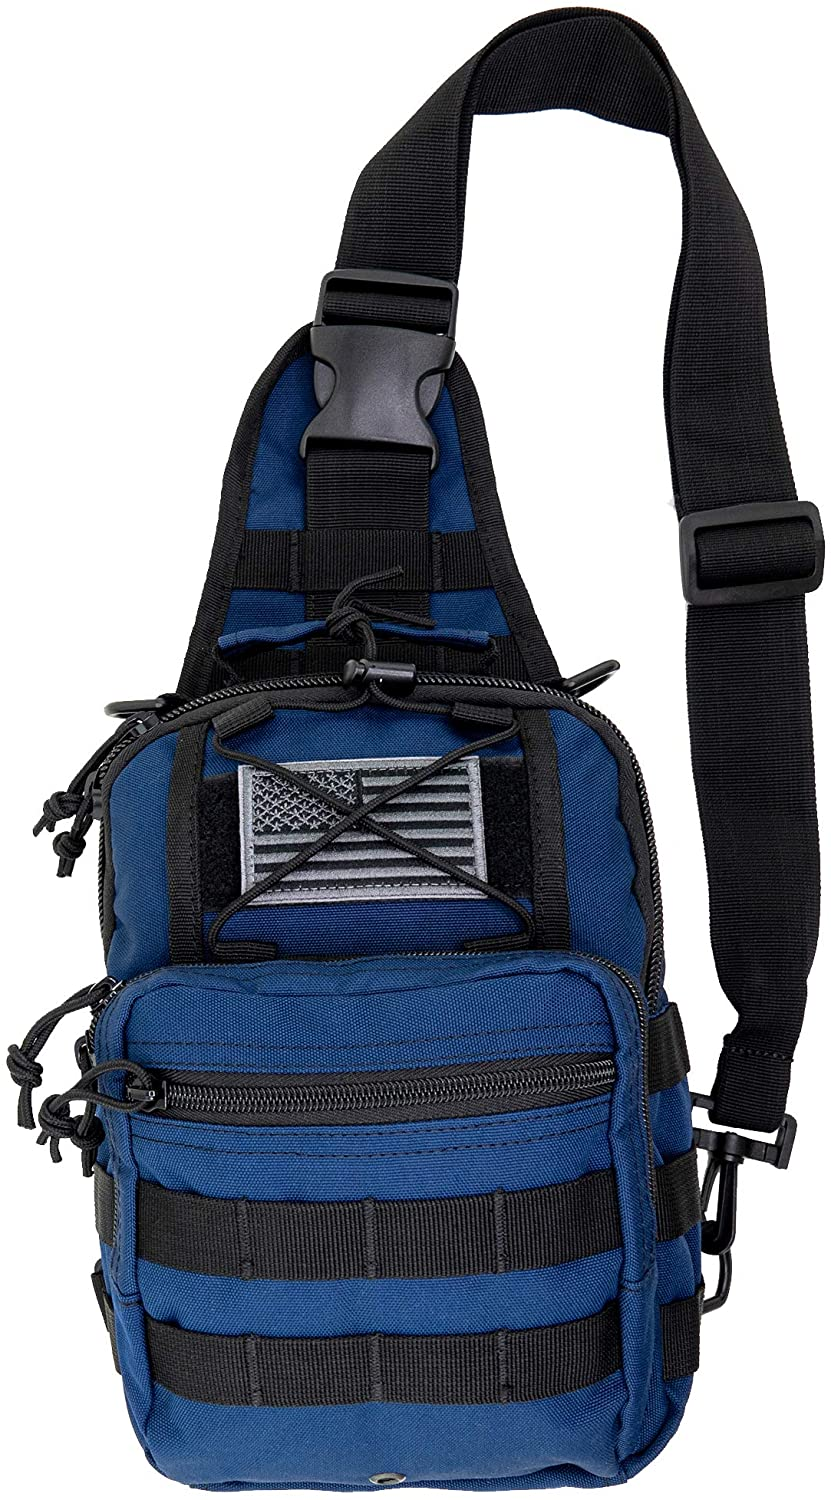 LINE2design First Aid Sling Backpack - EMS Equipment Emergency Medical Supplies Tactical Range Shoulder Molle Bag - Heavy Duty Sports Outdoor Rescue Pack - Perfect for Camping Hiking Trekking - Navy